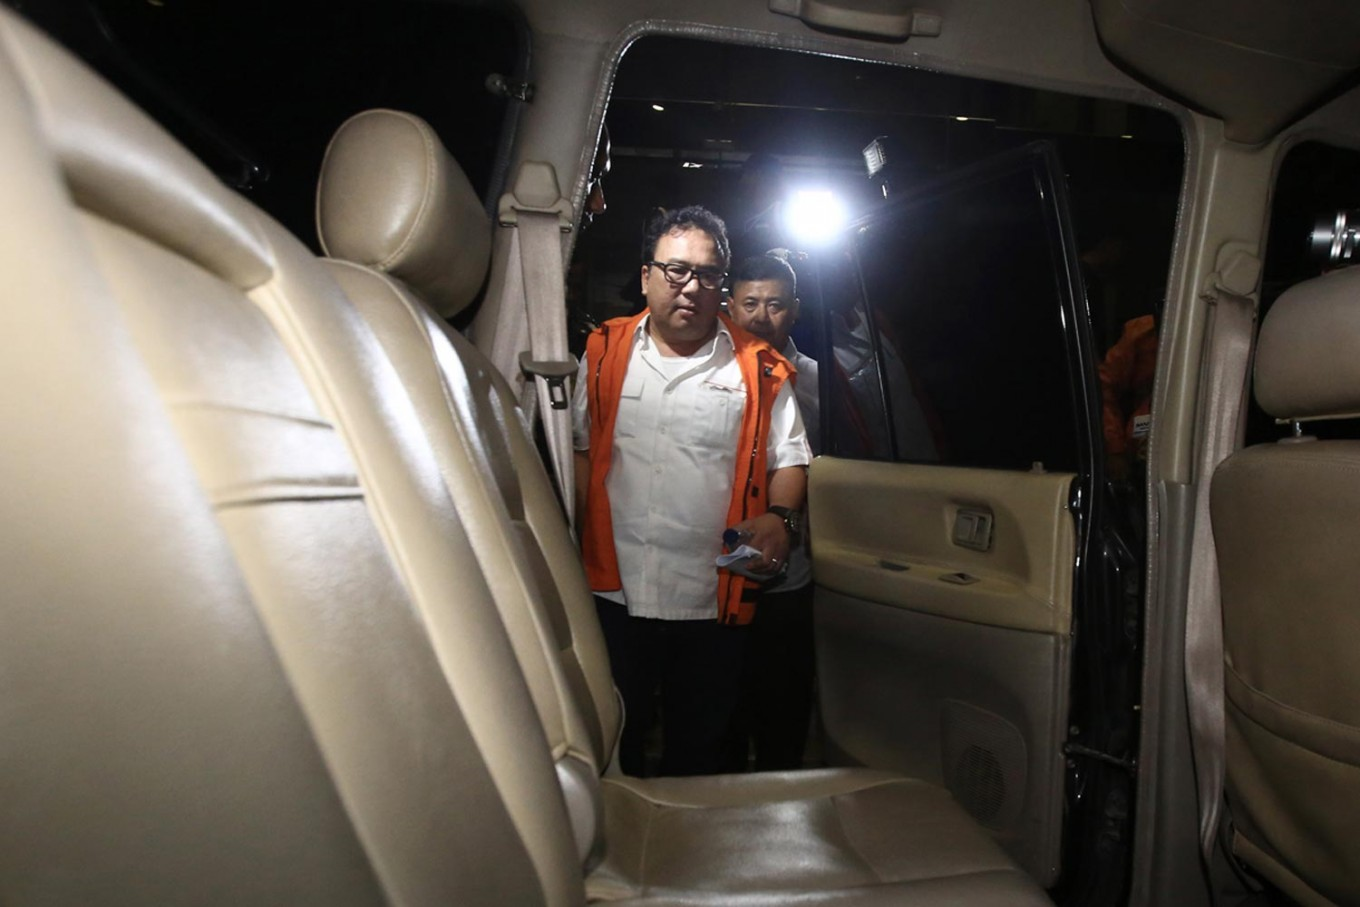 Corruption suspect Basuki Hariman walks to a car after being questioned by the Corruption Eradication Commission (KPK) on Jan. 27. Basuki has reportedly confessed to giving US$20,000 and S$200,000 to an aide of Constitutional Court justice Patrialis Akbar, identified as Kamaludin.